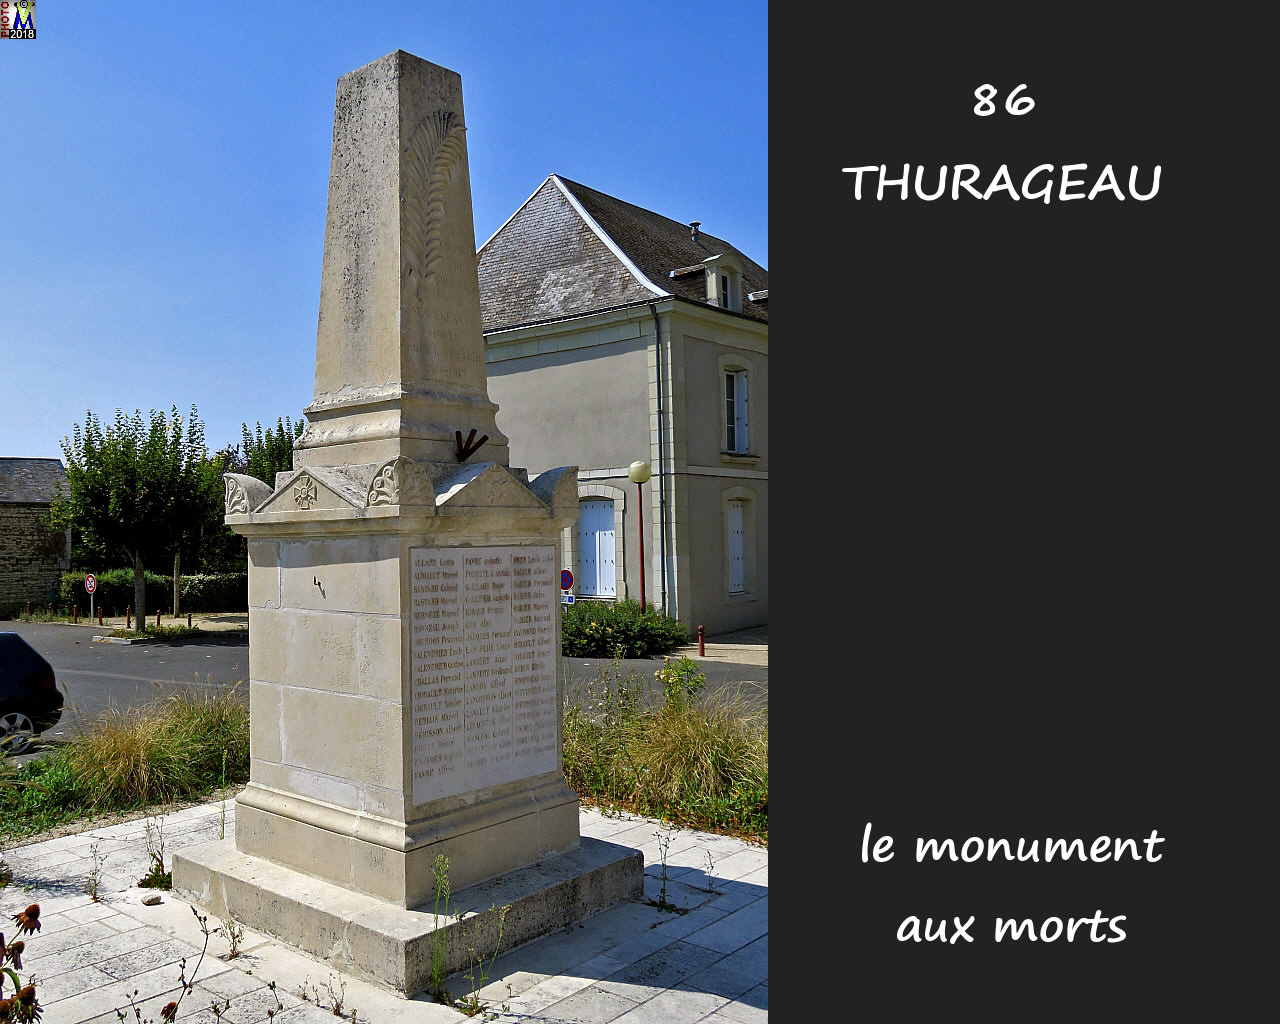 86THURAGEAU_morts_100.jpg